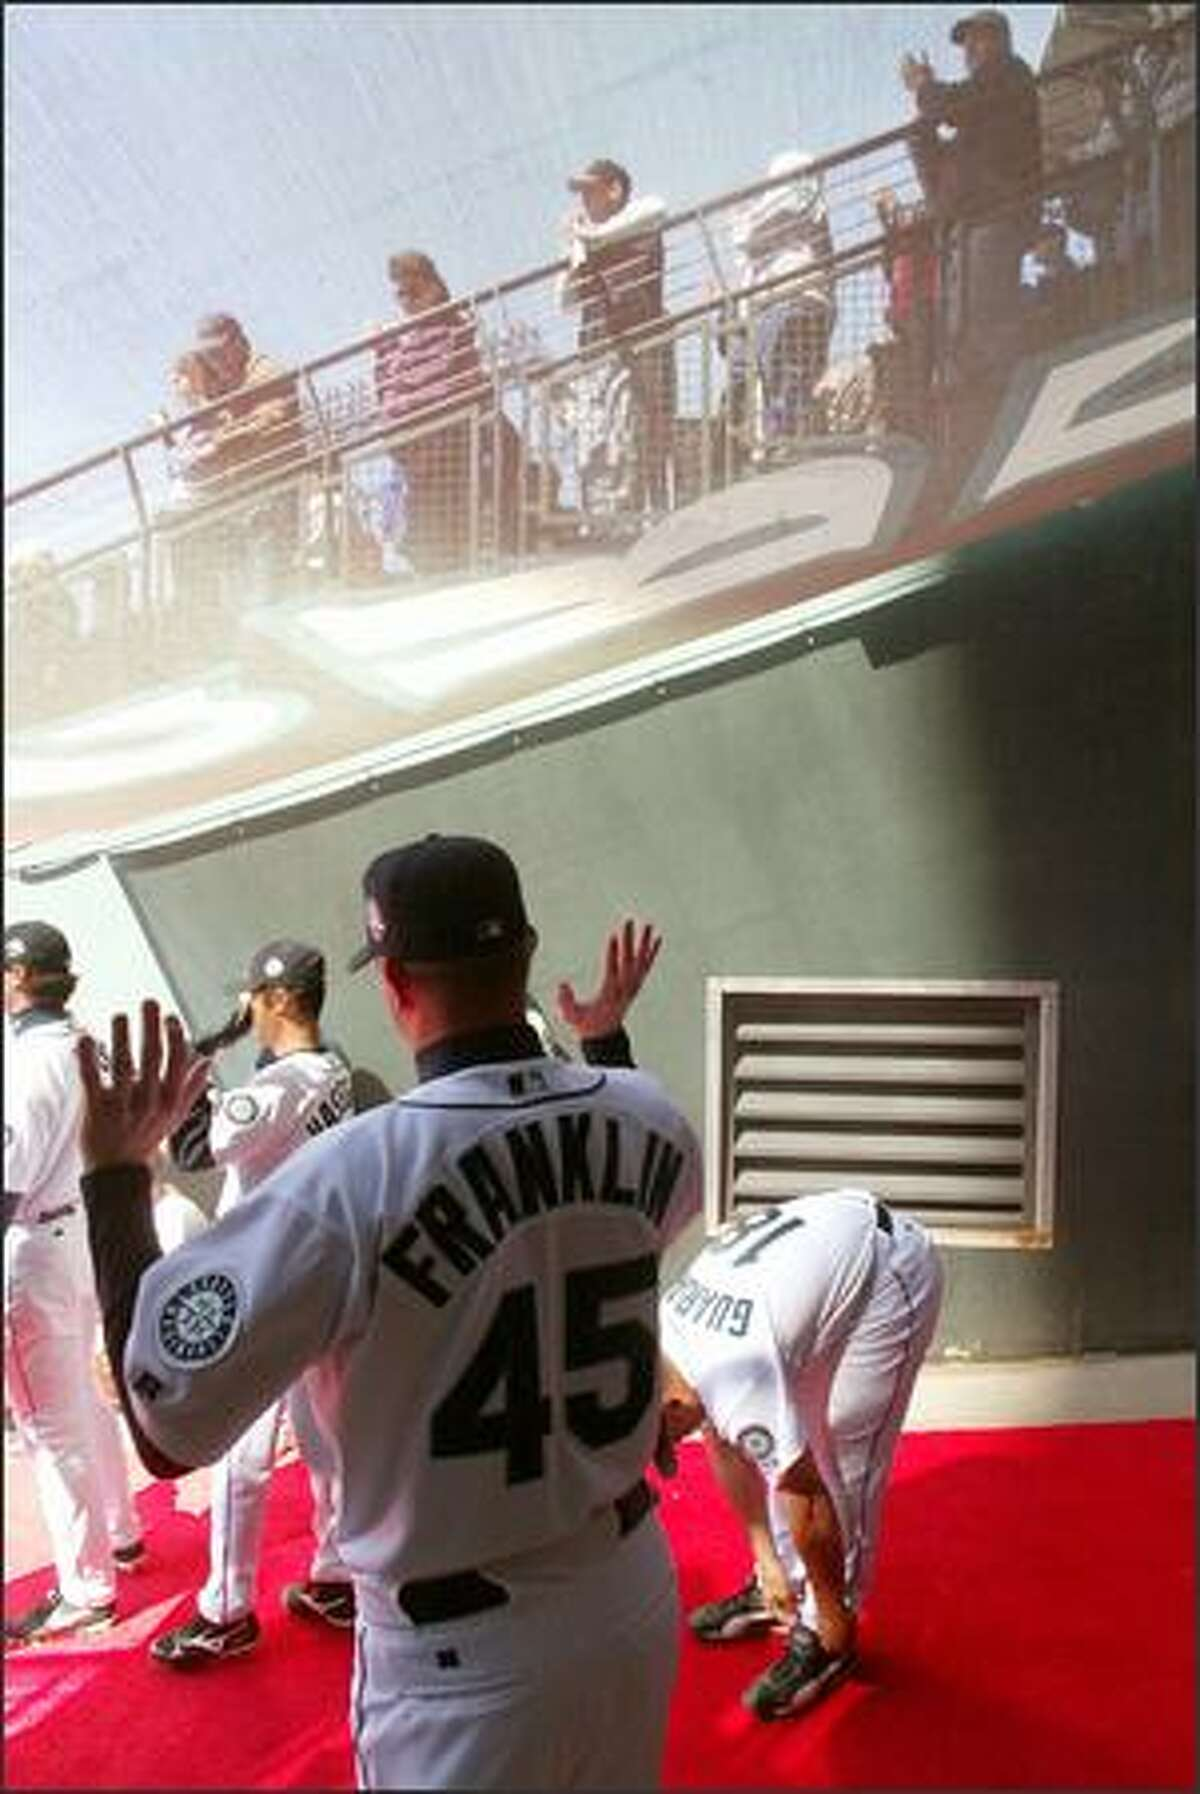 Mariners pitcher Ryan Franklin motions for fans to pump up the volume while waiting backstage to be introduced.